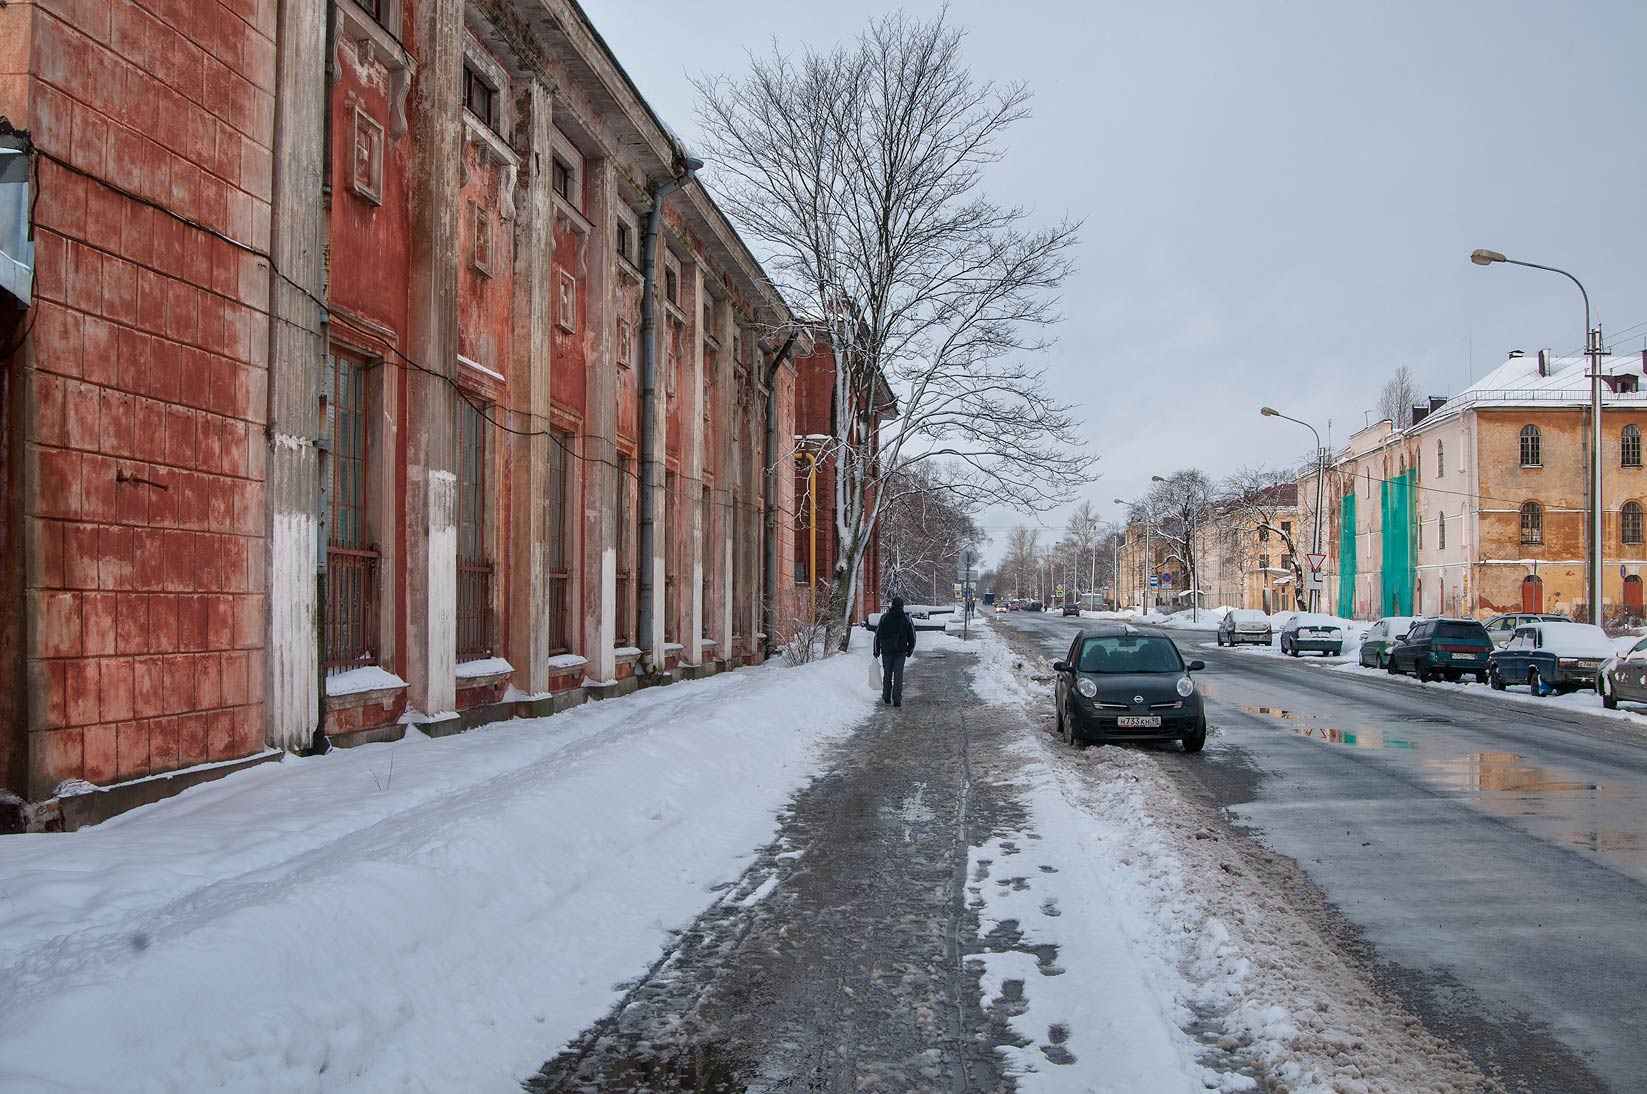 Petrovskaya St. in snow. Kronstadt (part of St.Petersburg), Russia